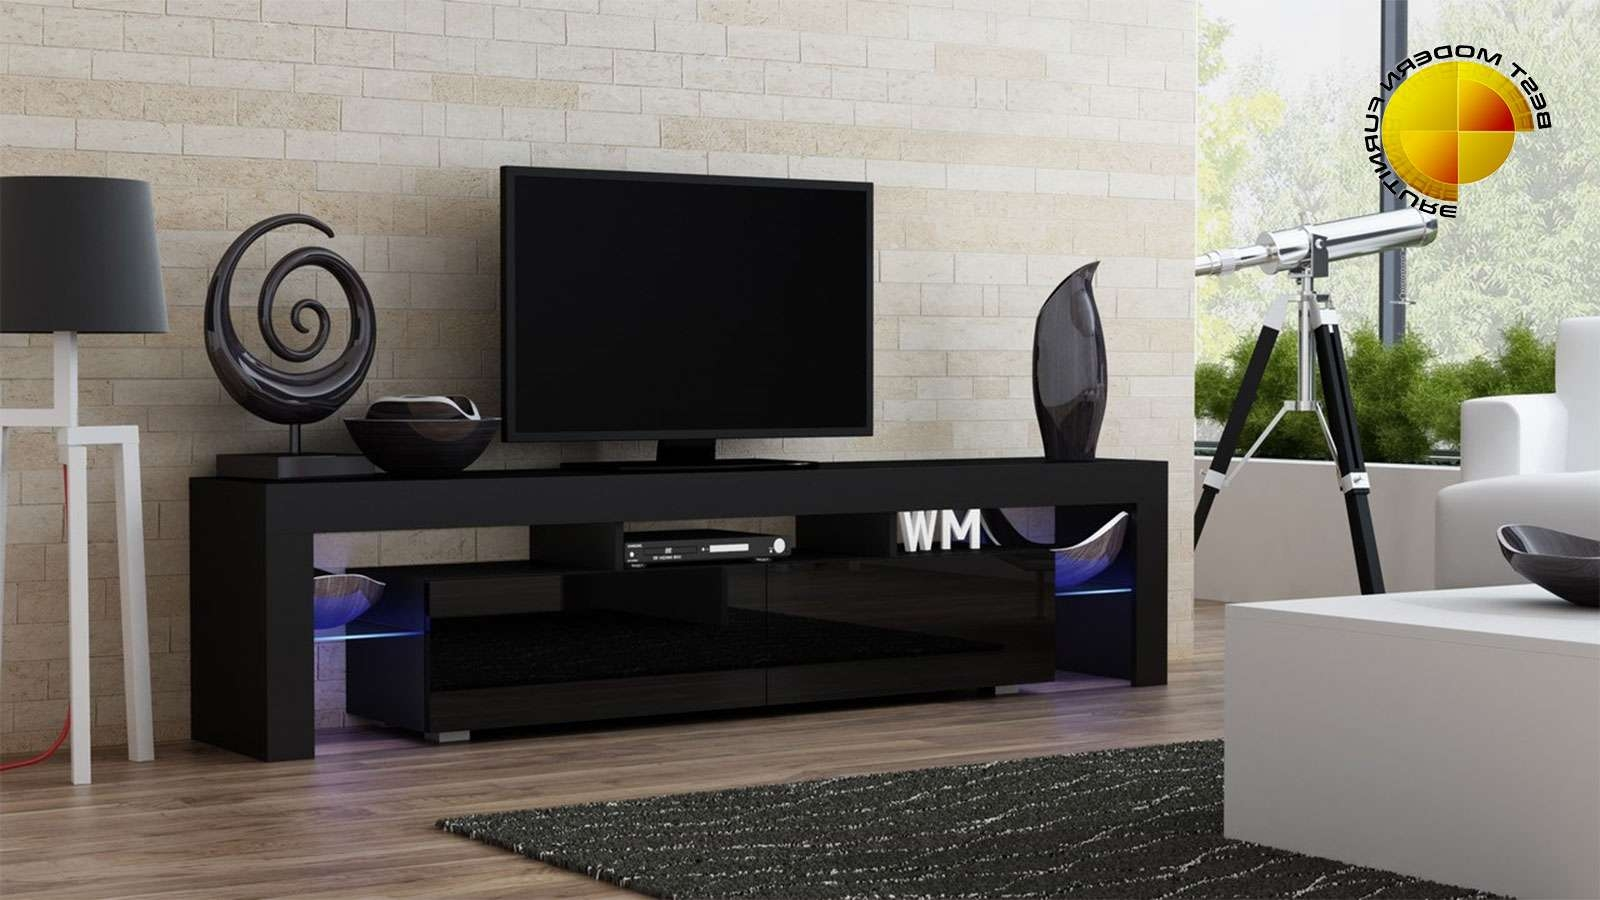 Modern Tv Stand 200Cm High Gloss Cabinet Rgb Led Lights Black Unit Throughout Black Modern Tv Stands (View 11 of 15)